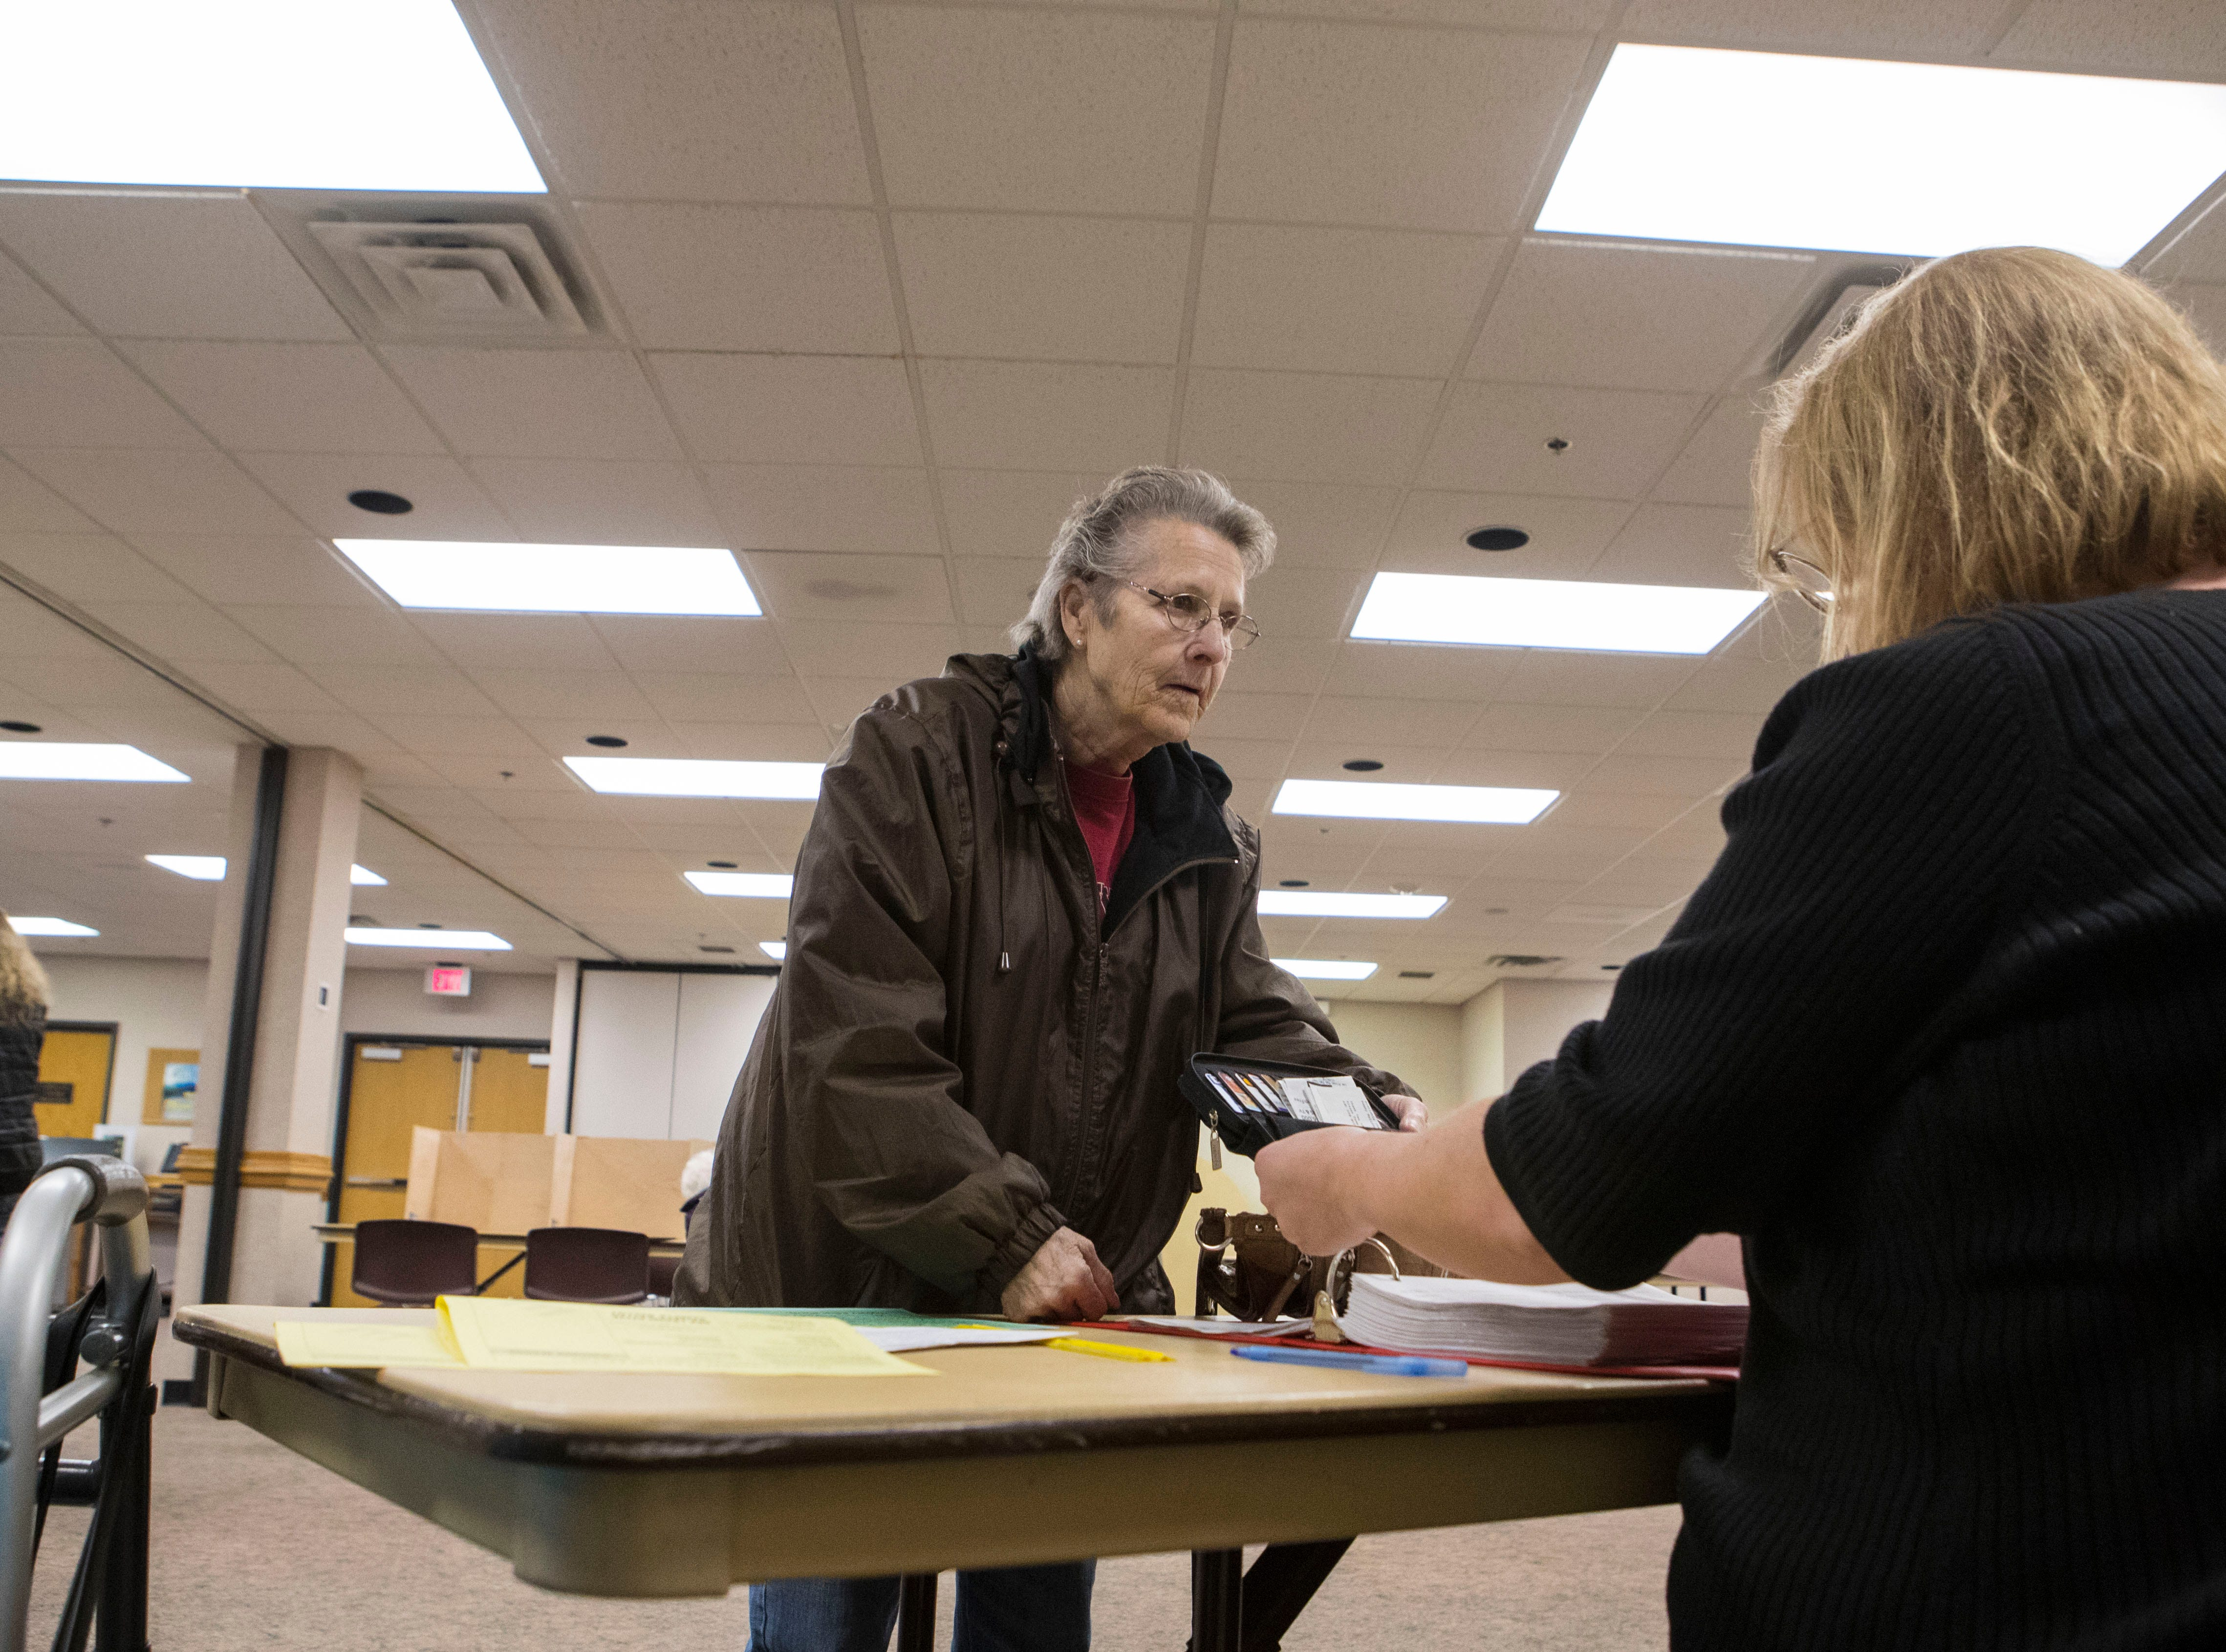 Diana Friedrichs gets checked in by election officials at First Lutheran Church in Sioux Falls, S.D., Tuesday, Nov. 6, 2018.